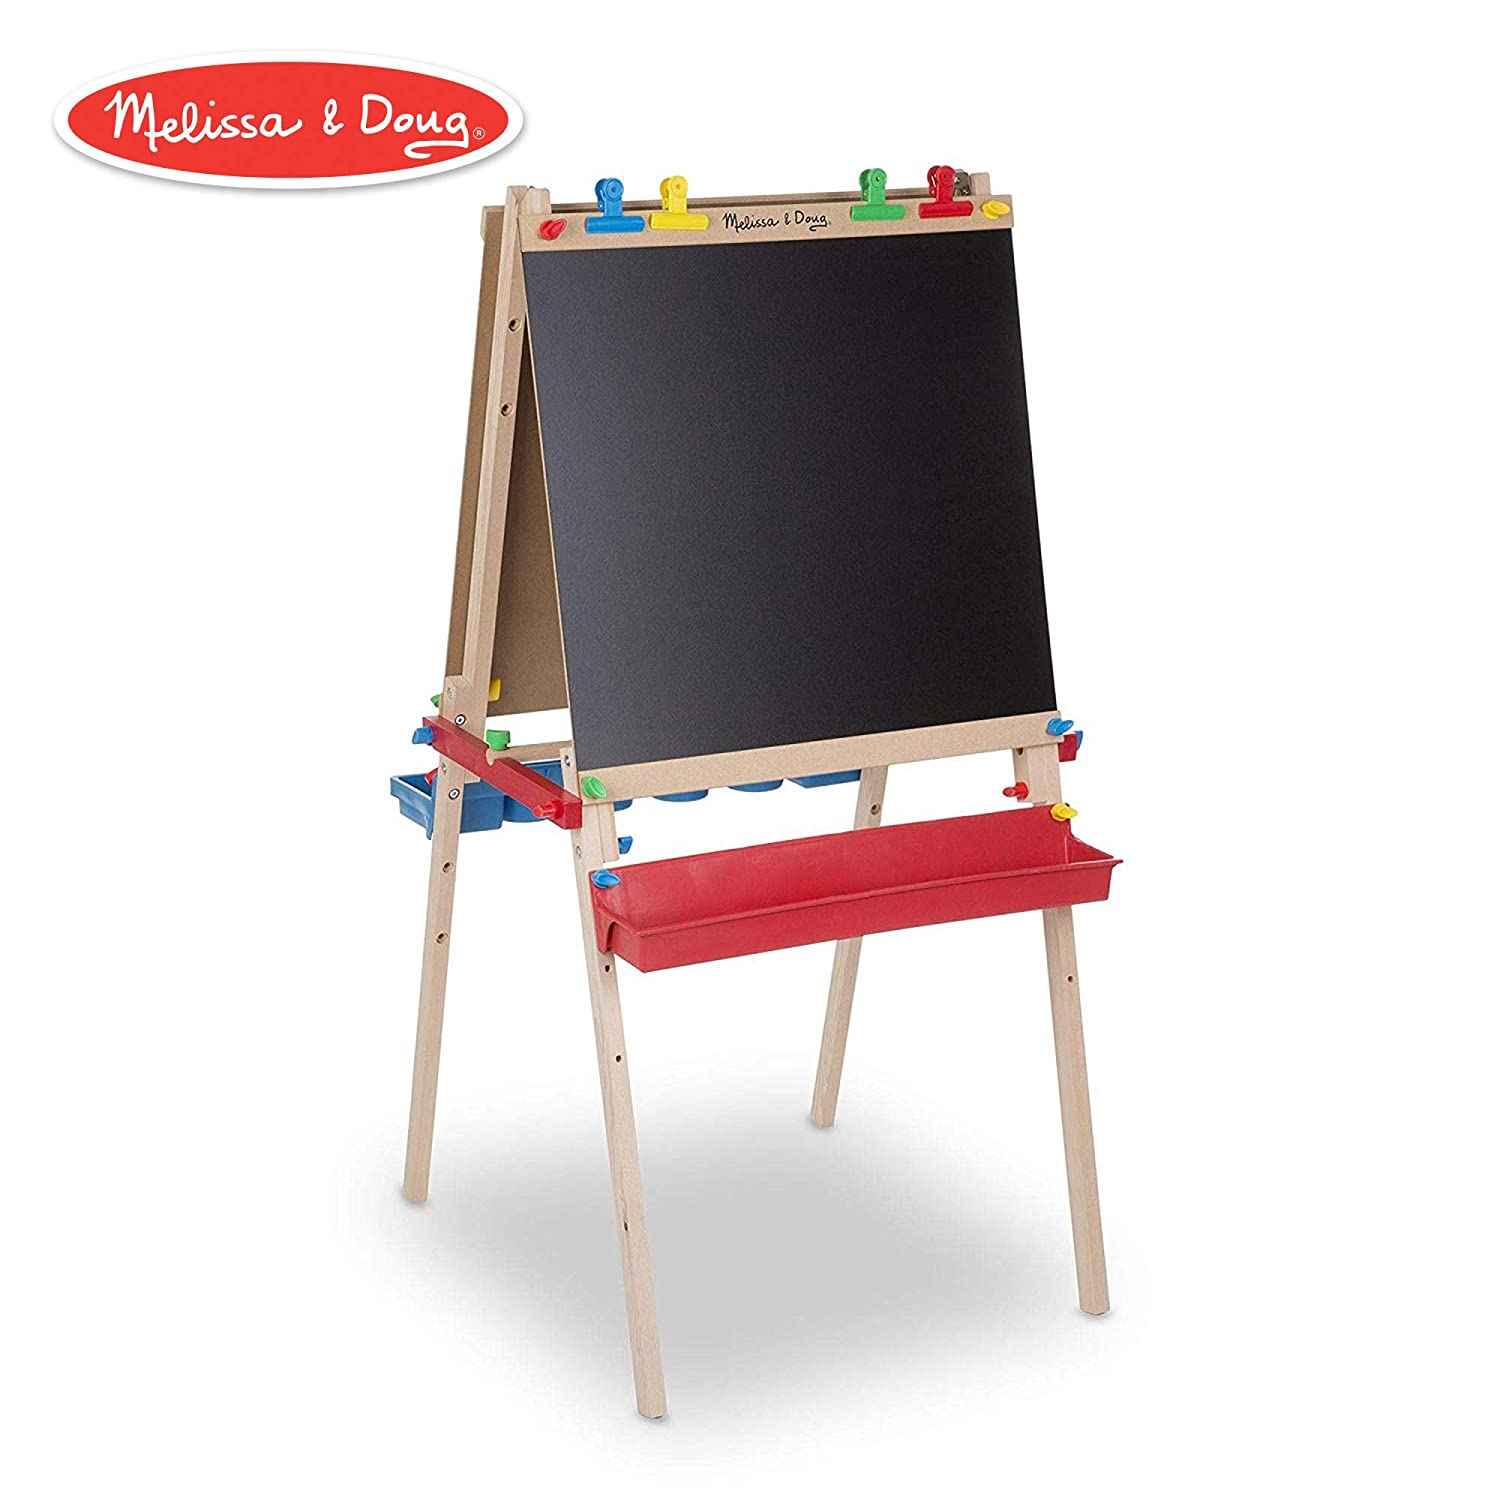 Top 7 Best Easel for Toddlers (2019 Reviews) 5